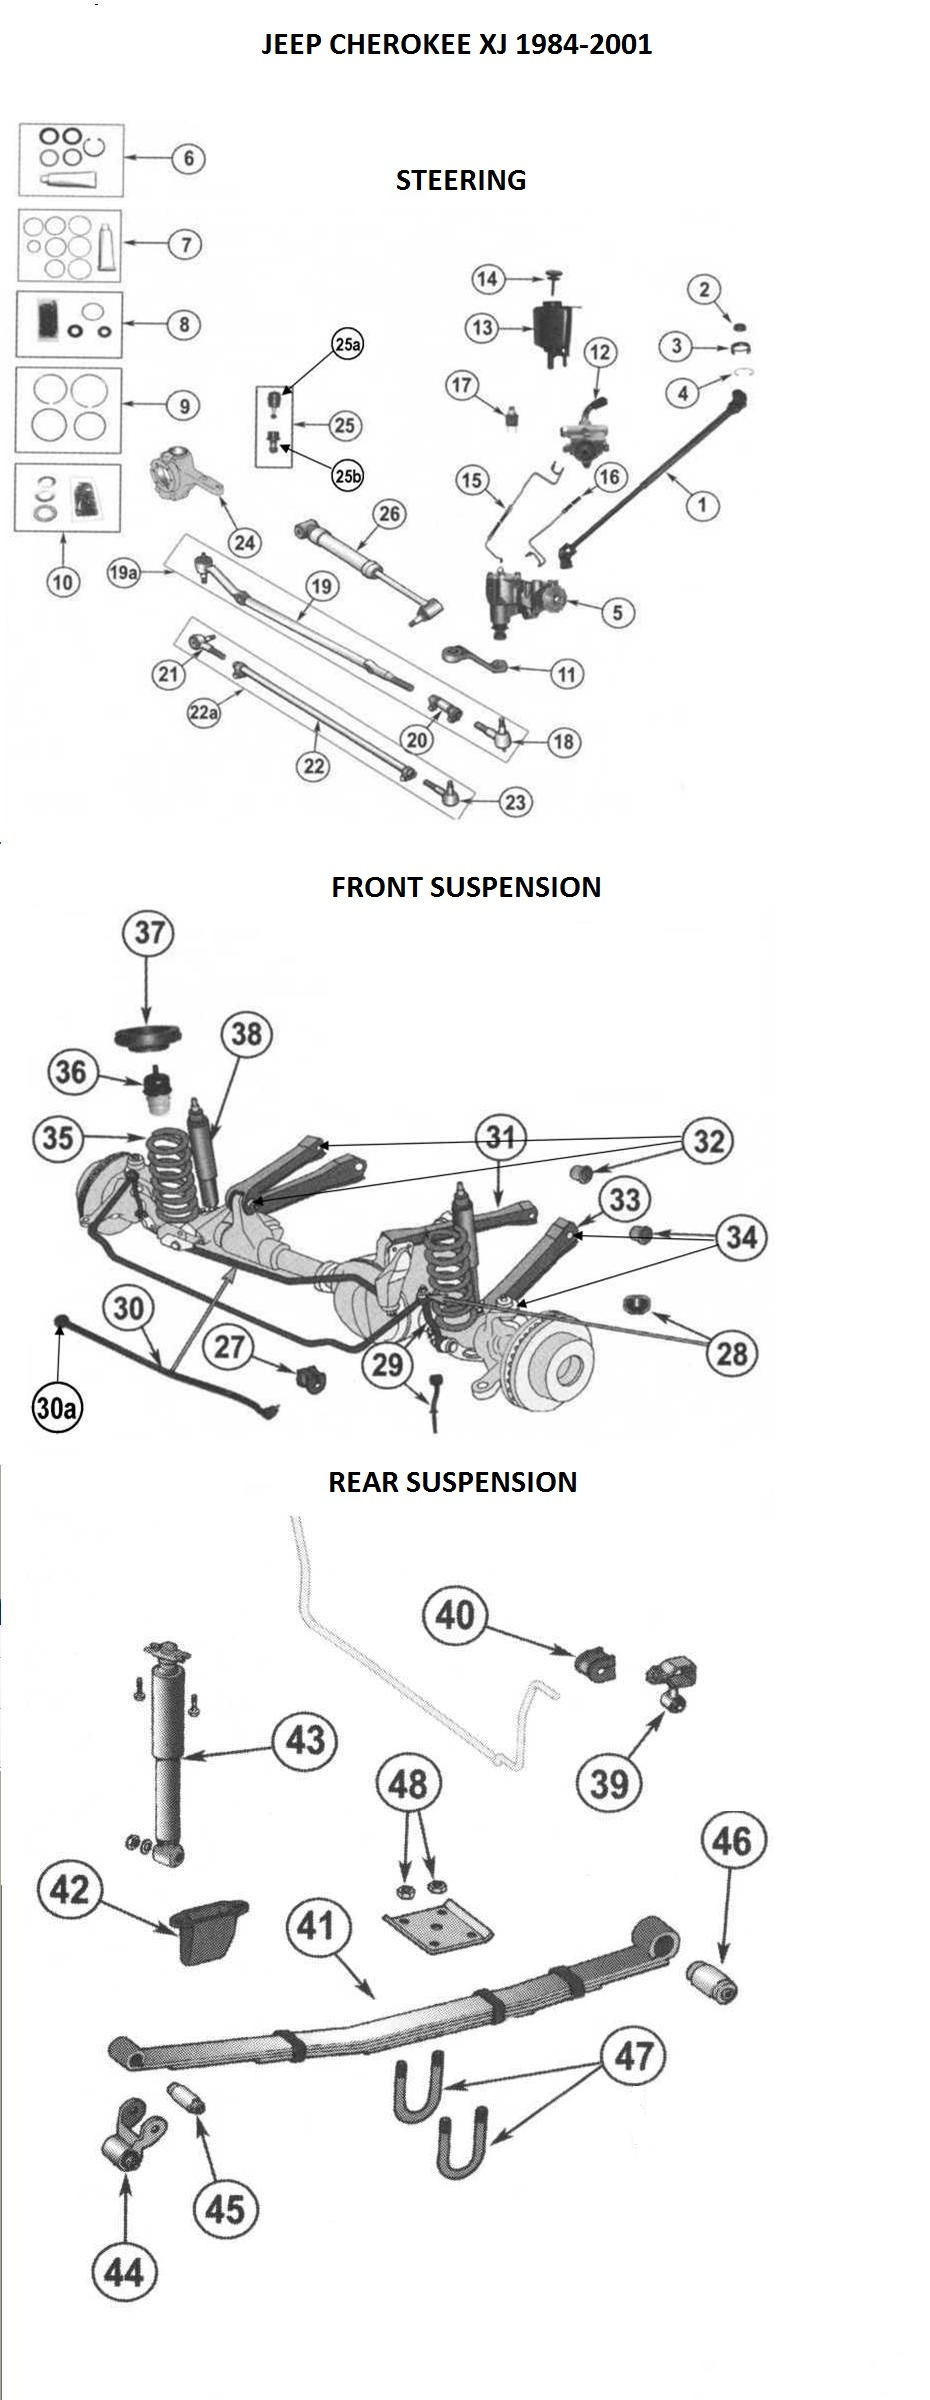 1998 Jeep Cherokee Front Suspension Diagram Jeep Grand Cherokee Front